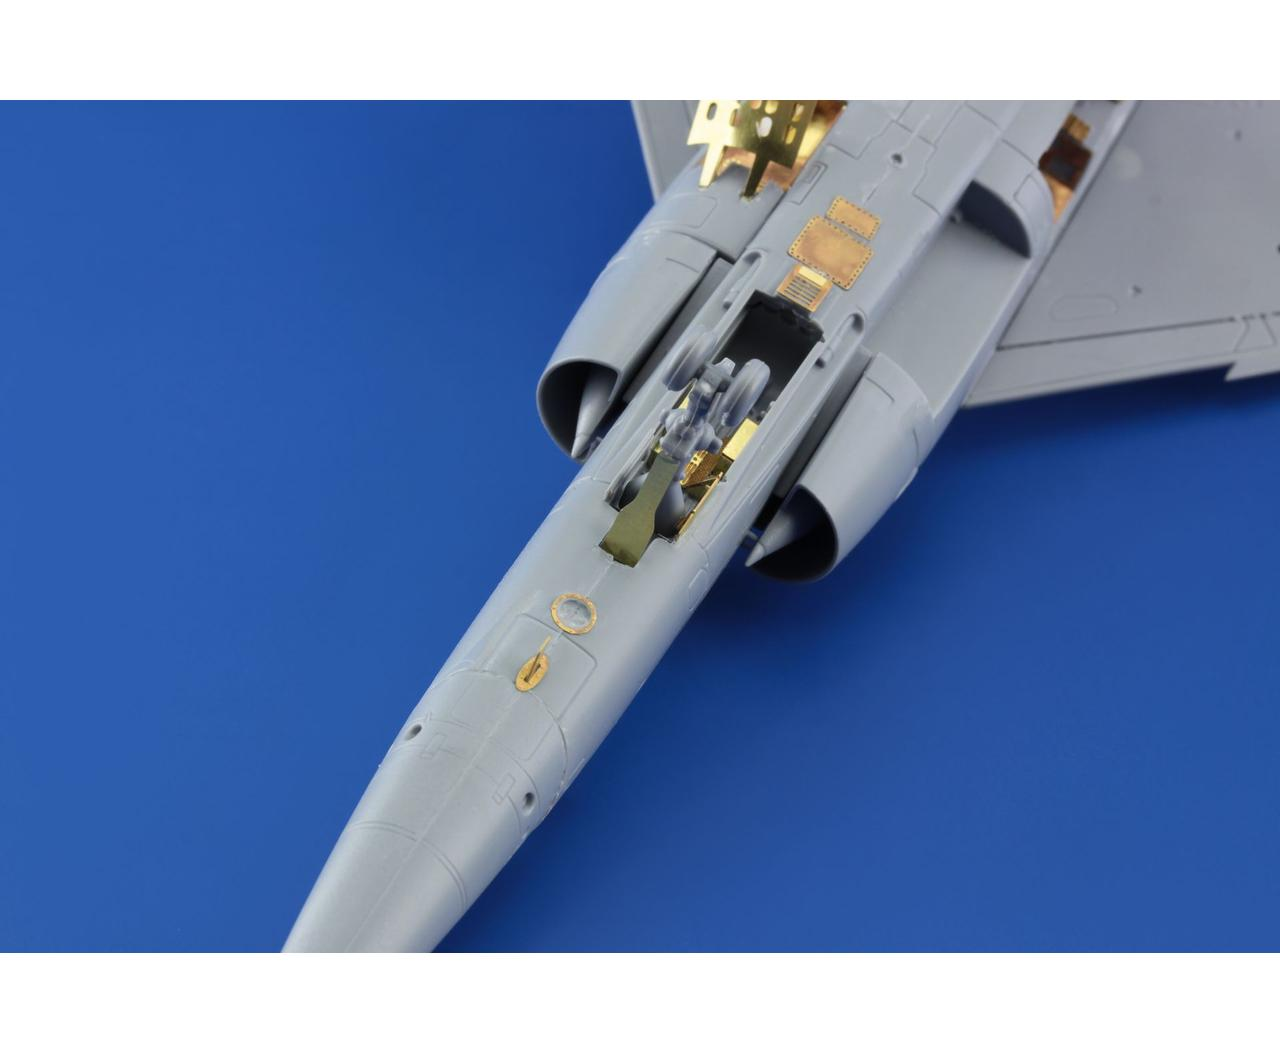 Eduard Accessories CX450 Mirage F.1 for Special Hobby in 1:72